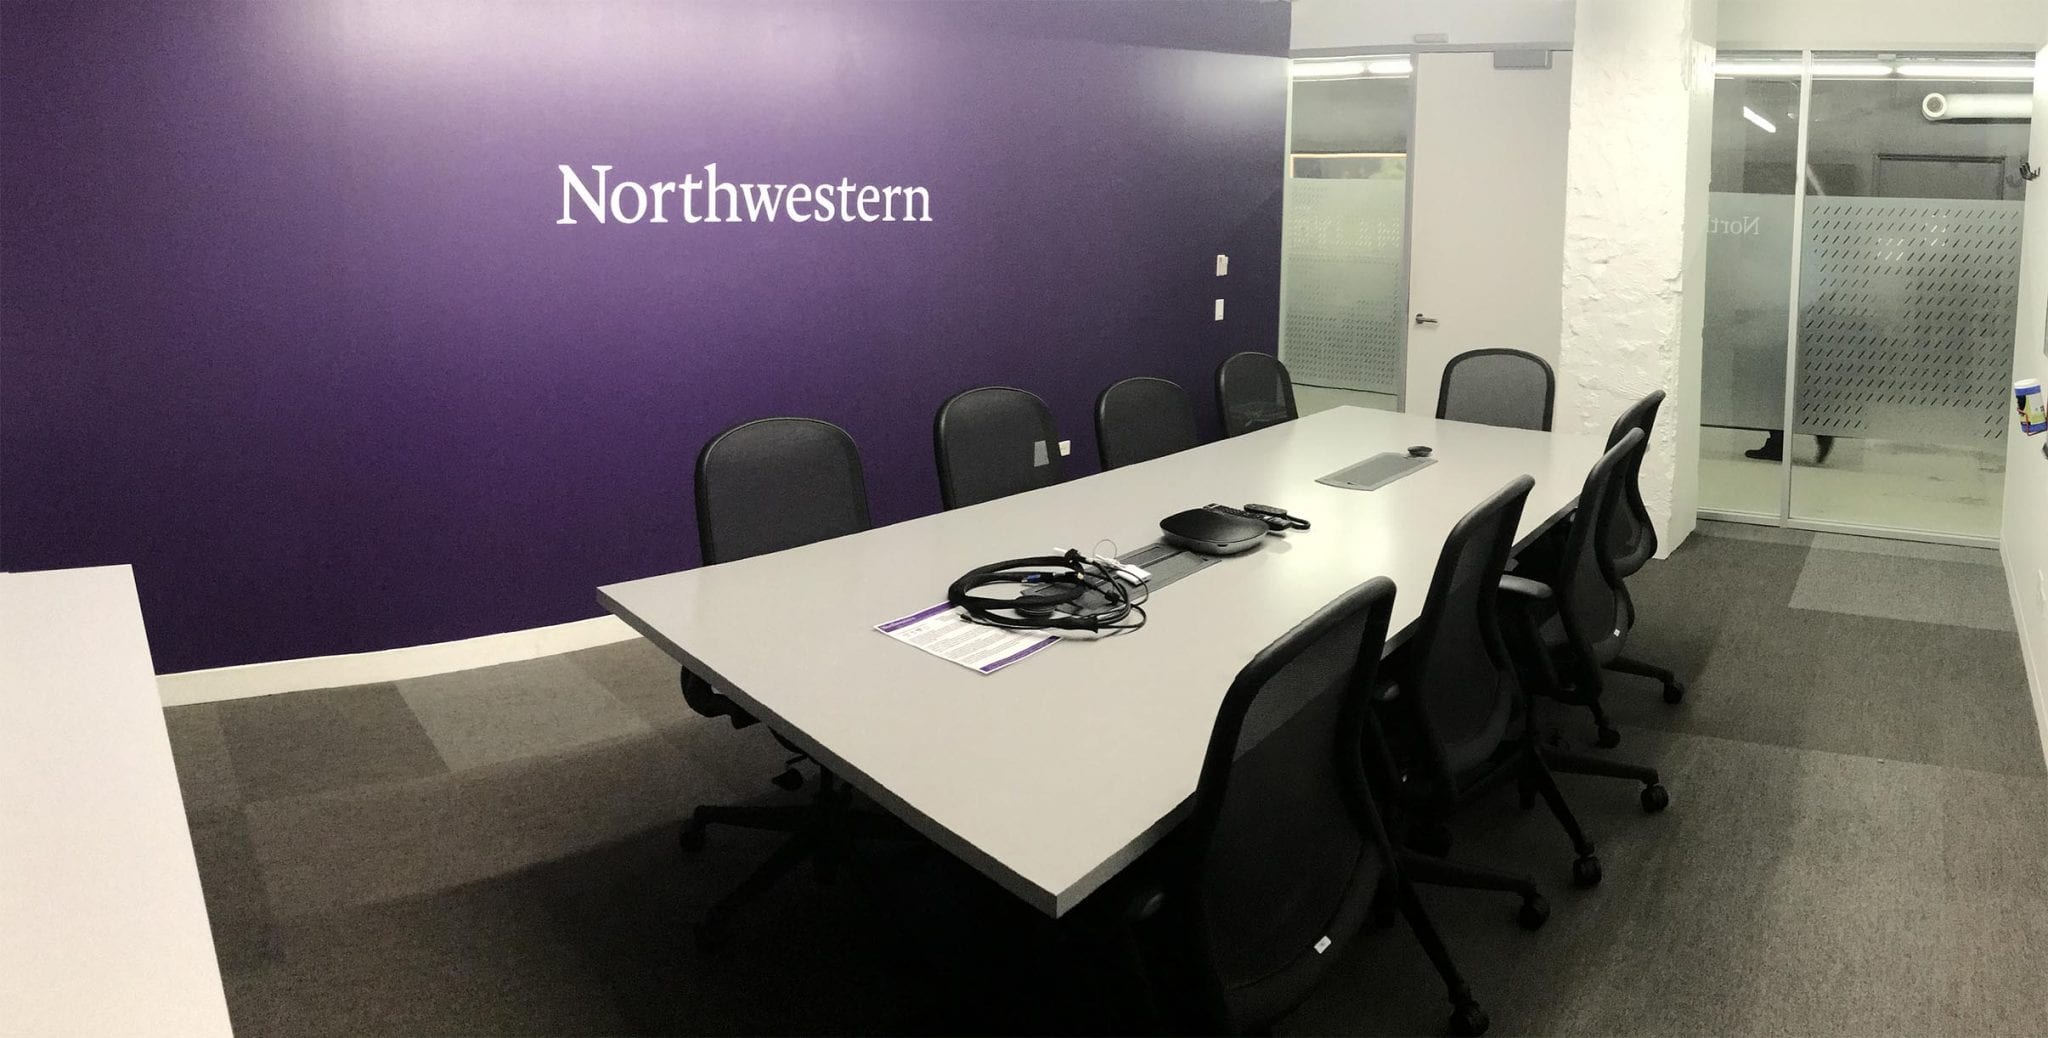 Image of the Northwestern conference room at 1871